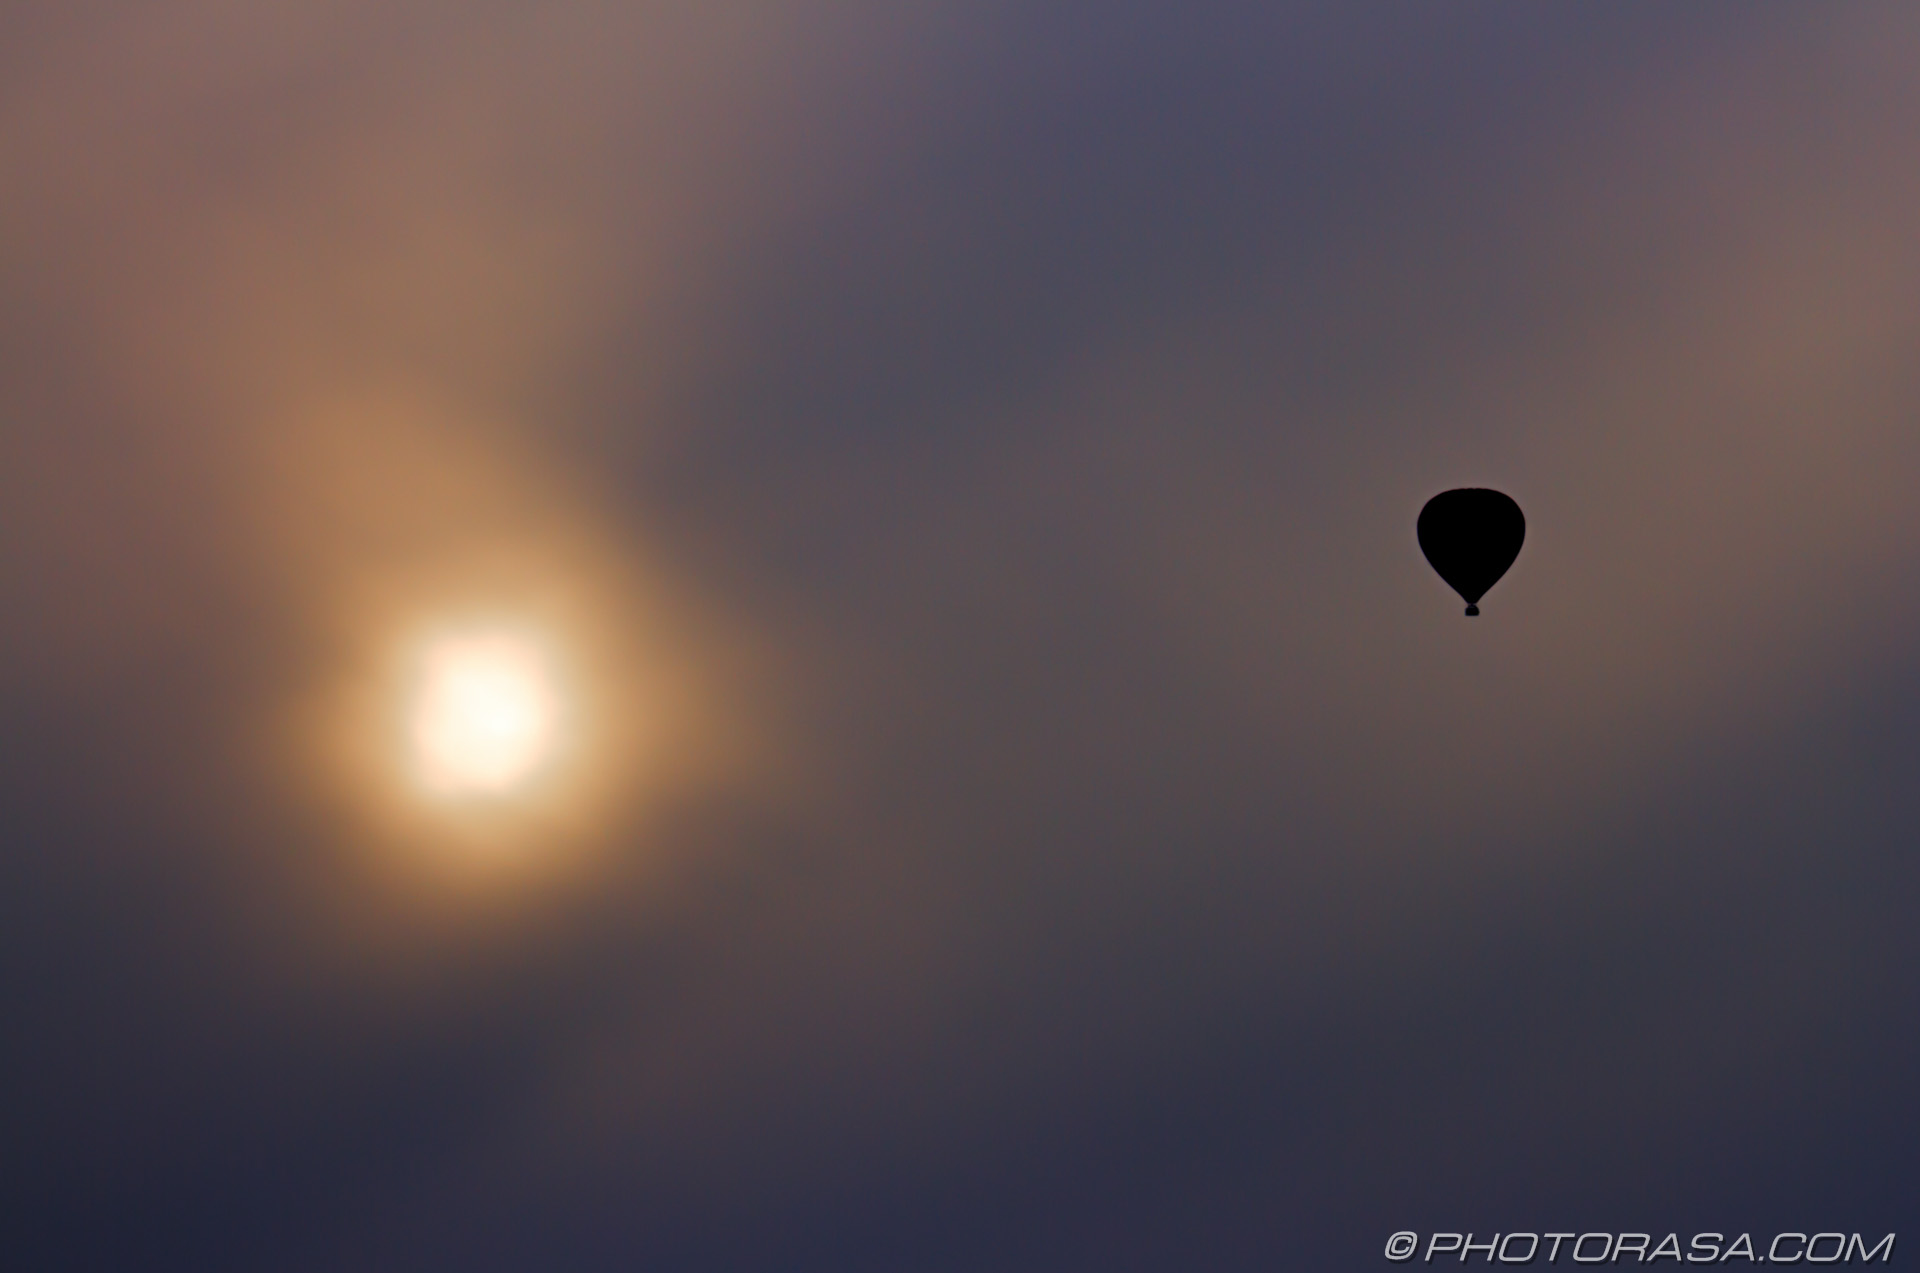 https://photorasa.com/balloons-evening-sky/hot-air-balloon-silhouette-and-sun/